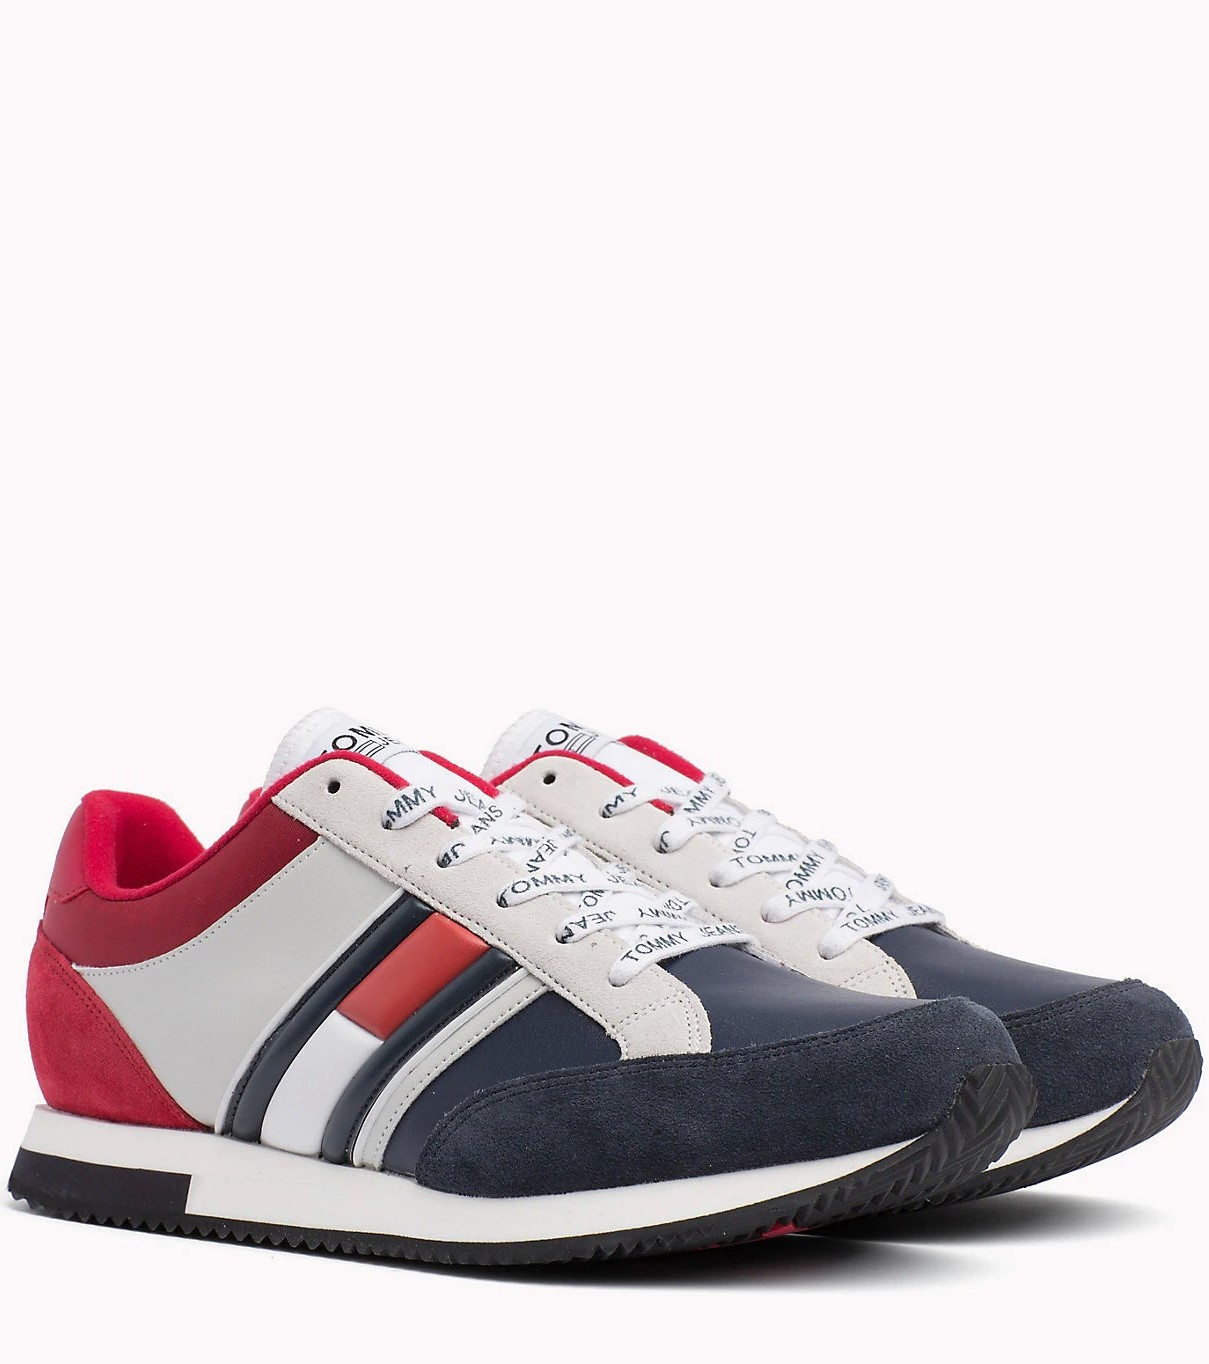 942414439 Tommy Hilfiger color Casual Retro Sneaker RWB Unisex Sneakers ...